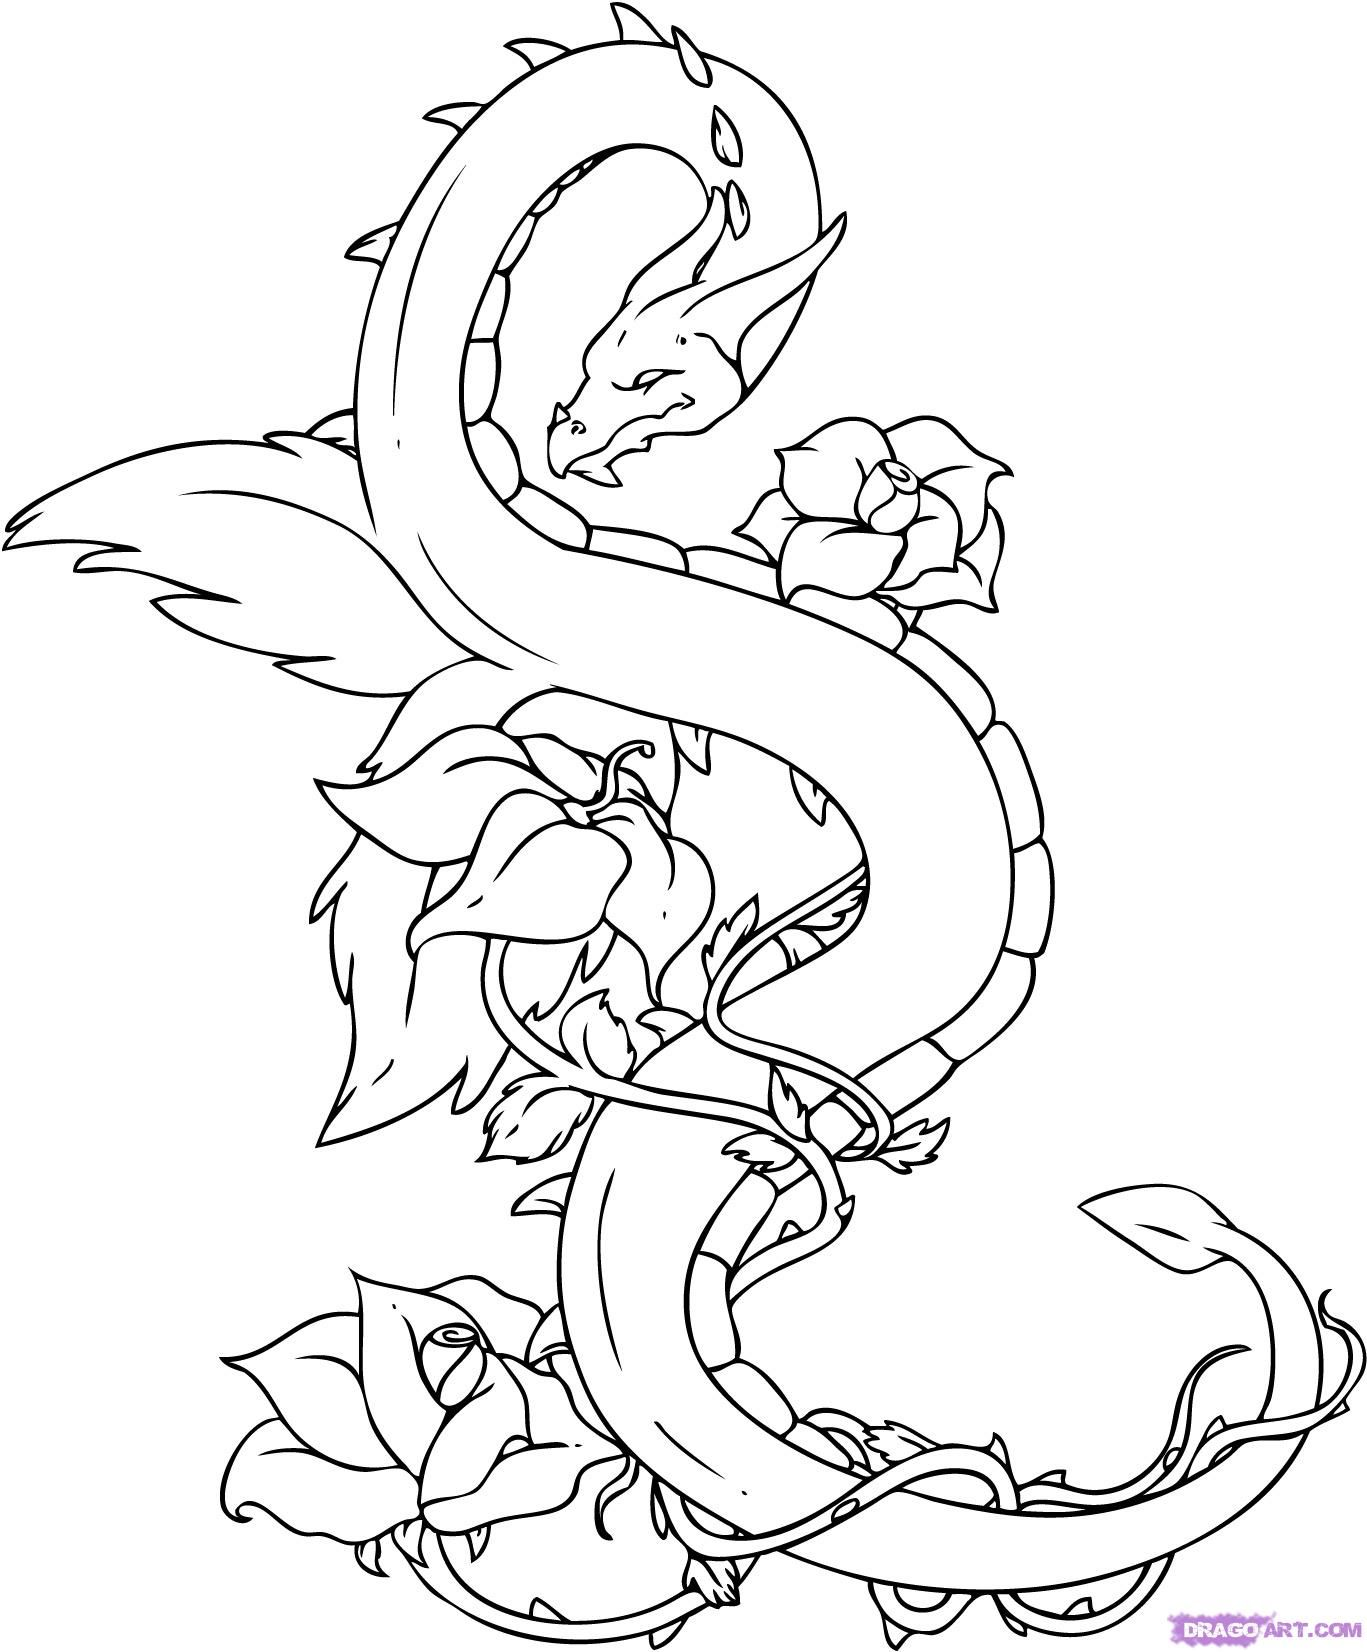 How to draw a dragon Dragon tattoo drawing, Dragon drawing